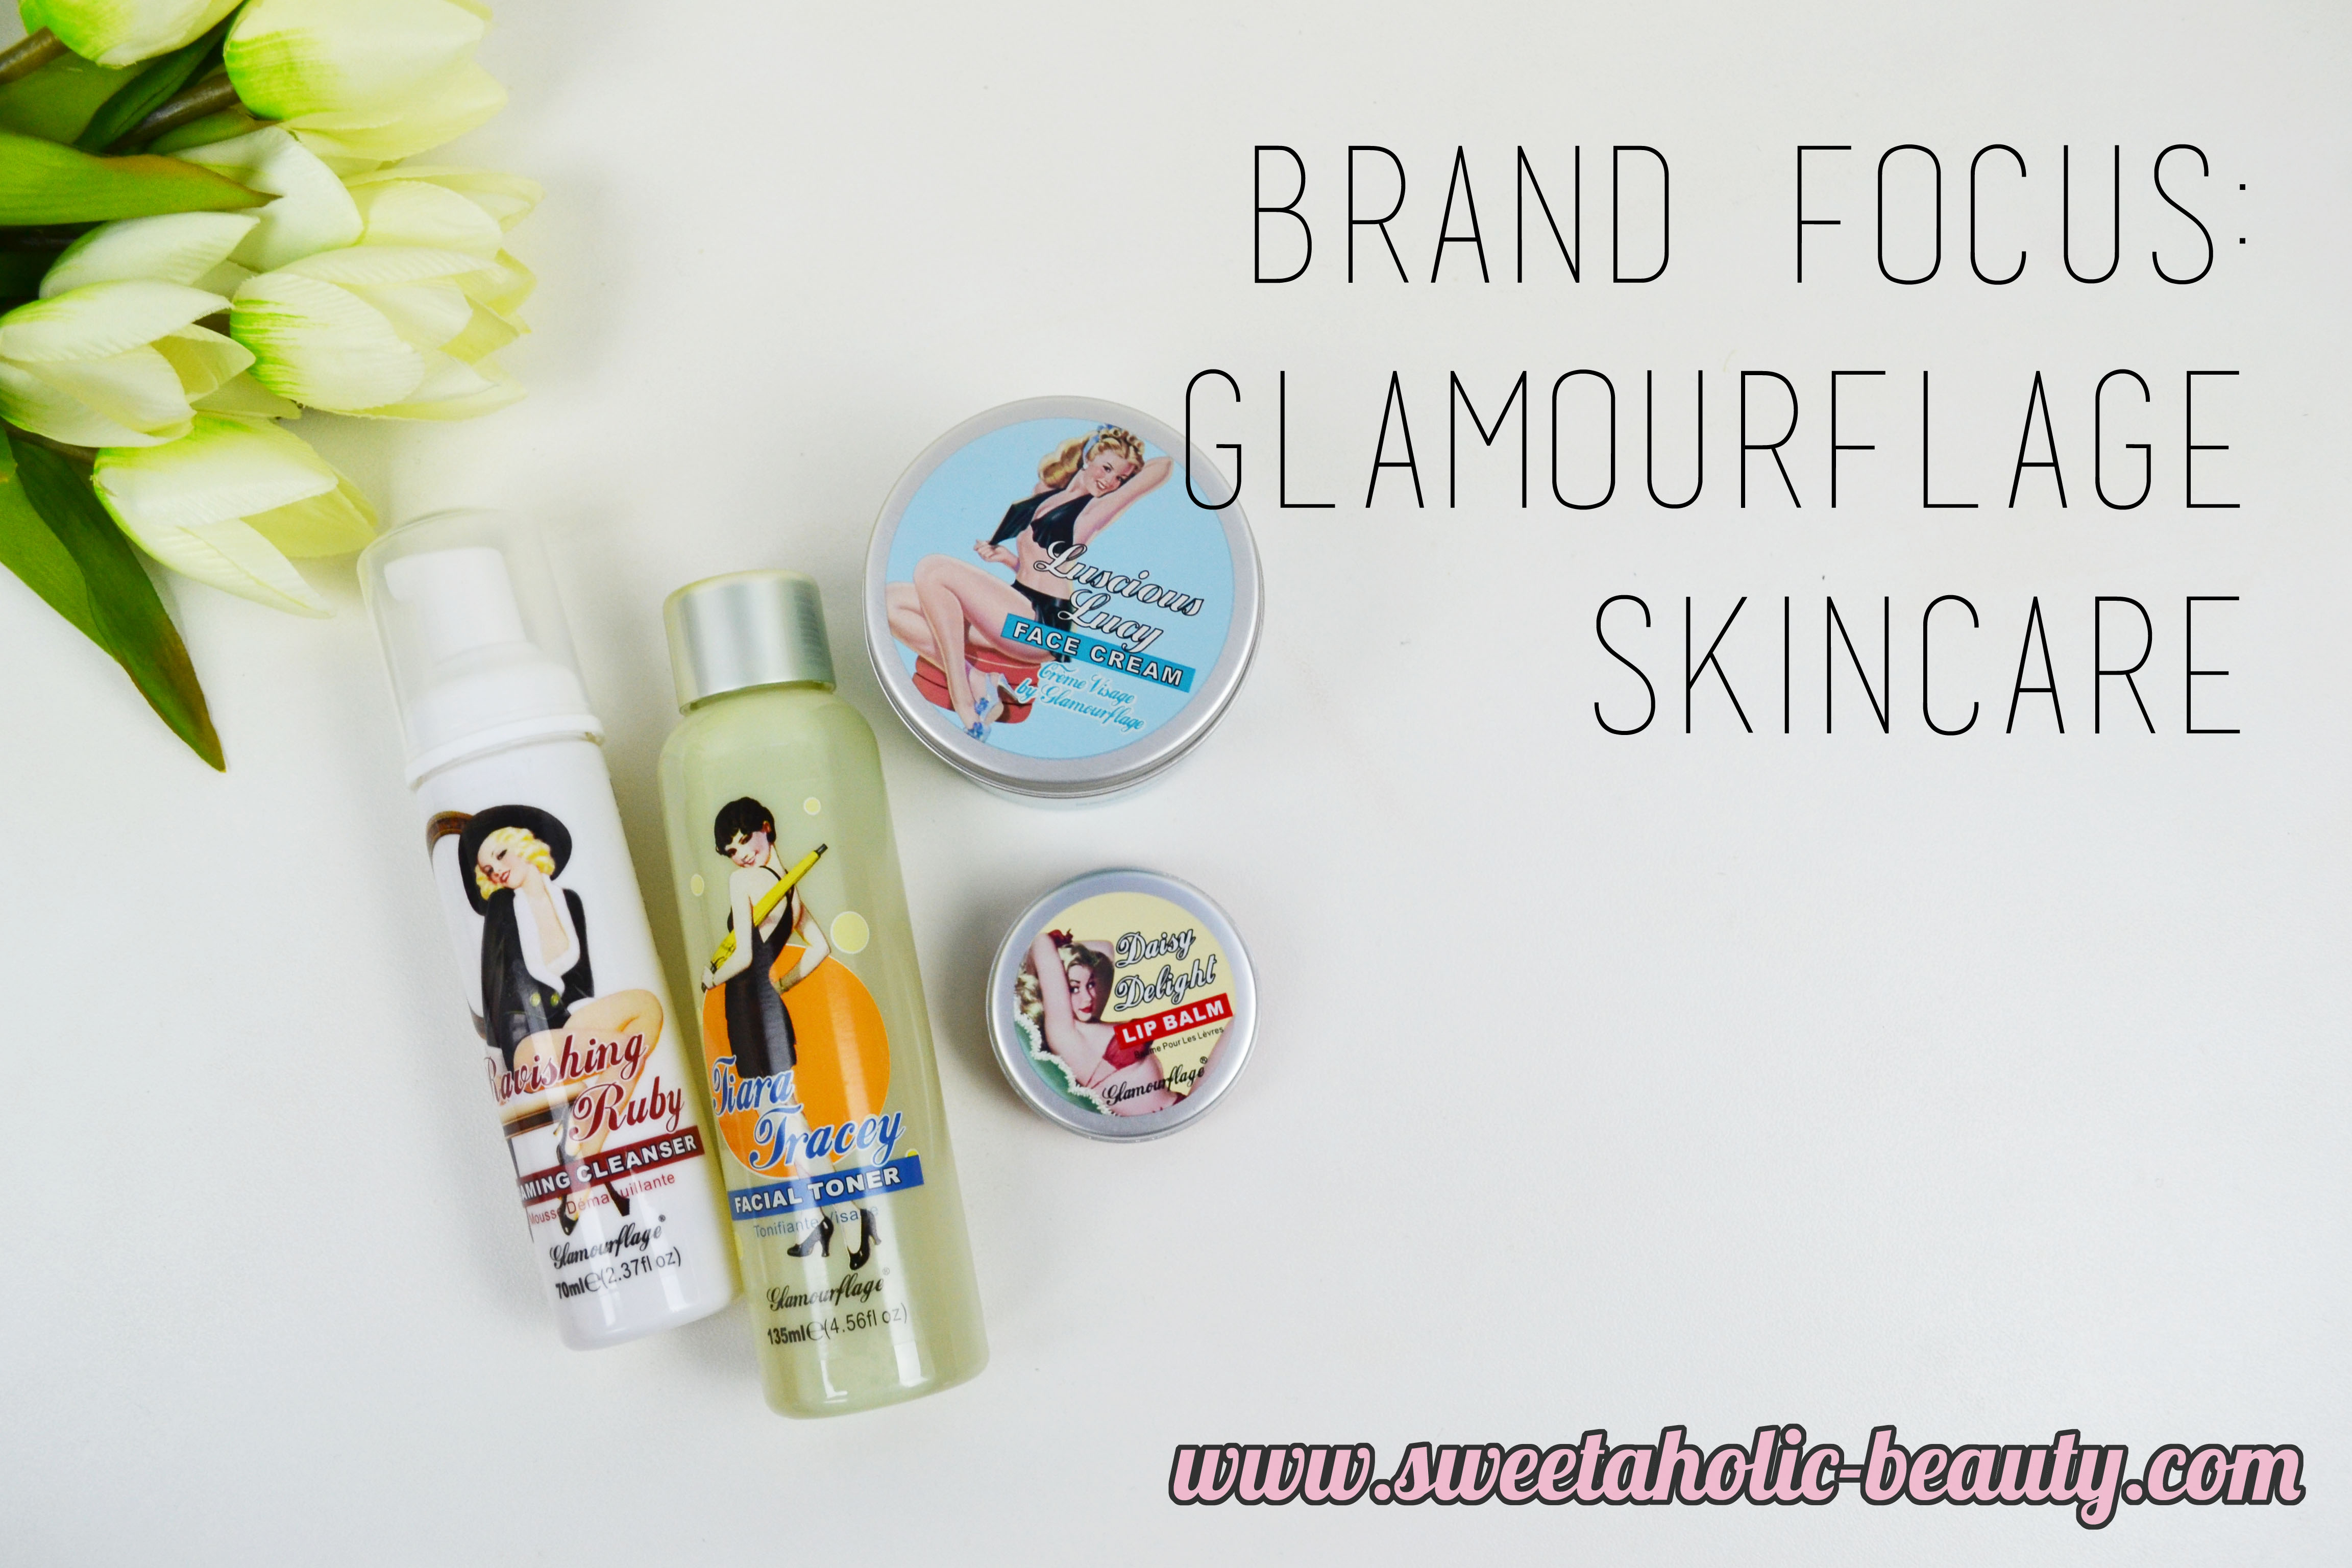 Glamourflage Skincare Brand Focus Review - Sweetaholic Beauty